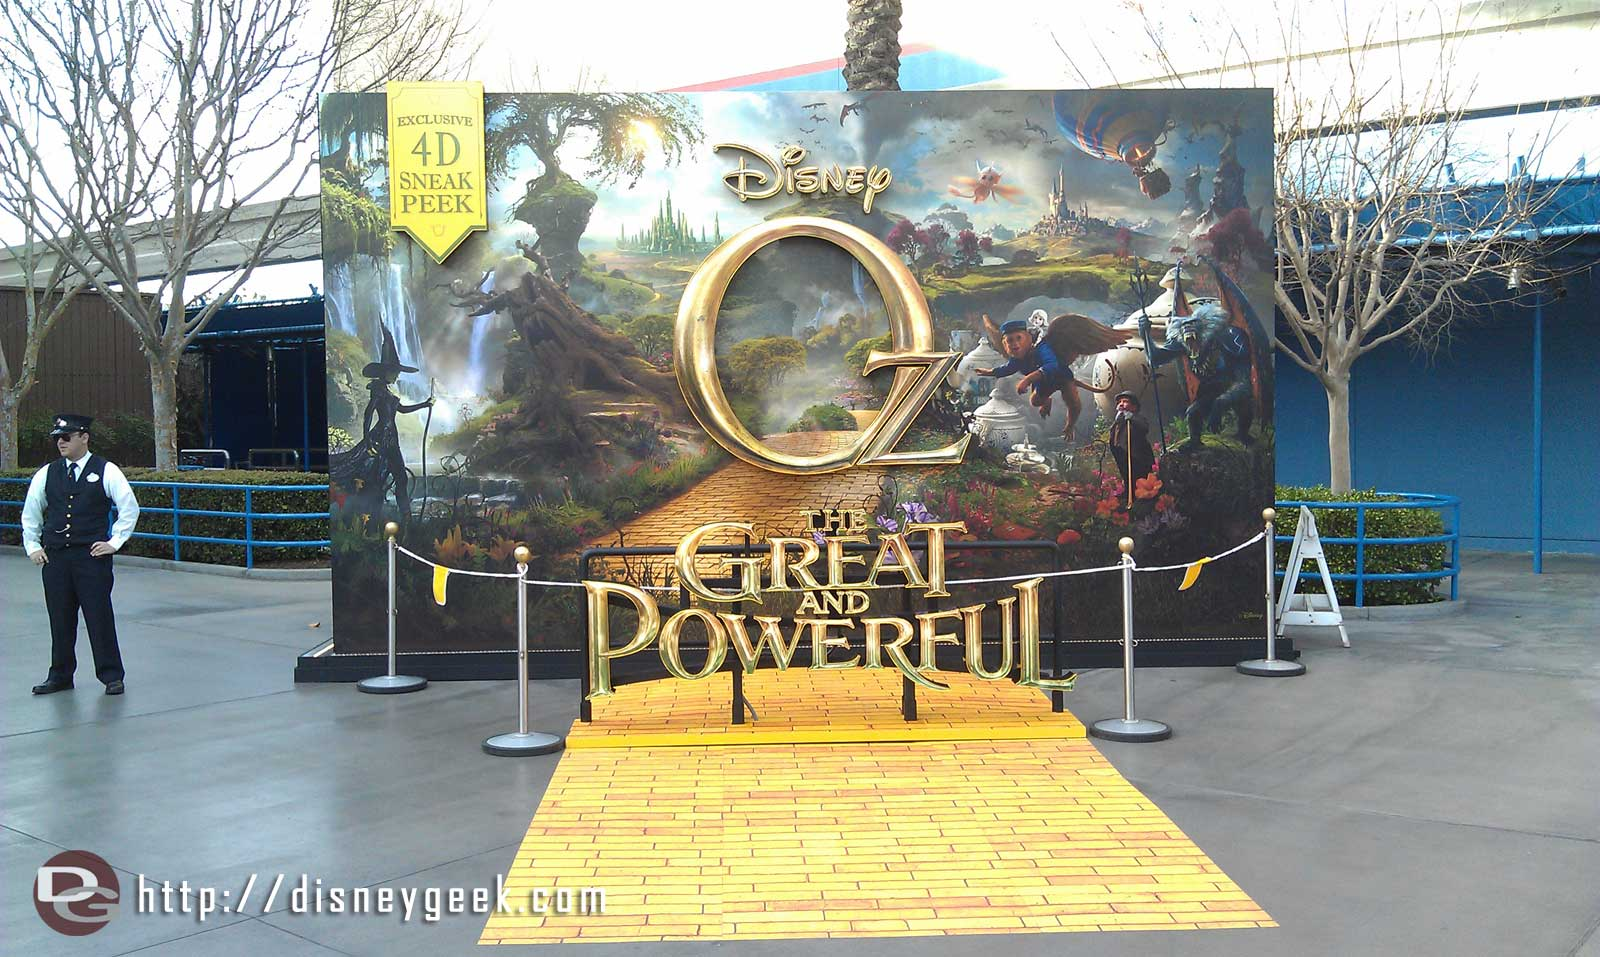 A photo op for Oz in HollywoodLand